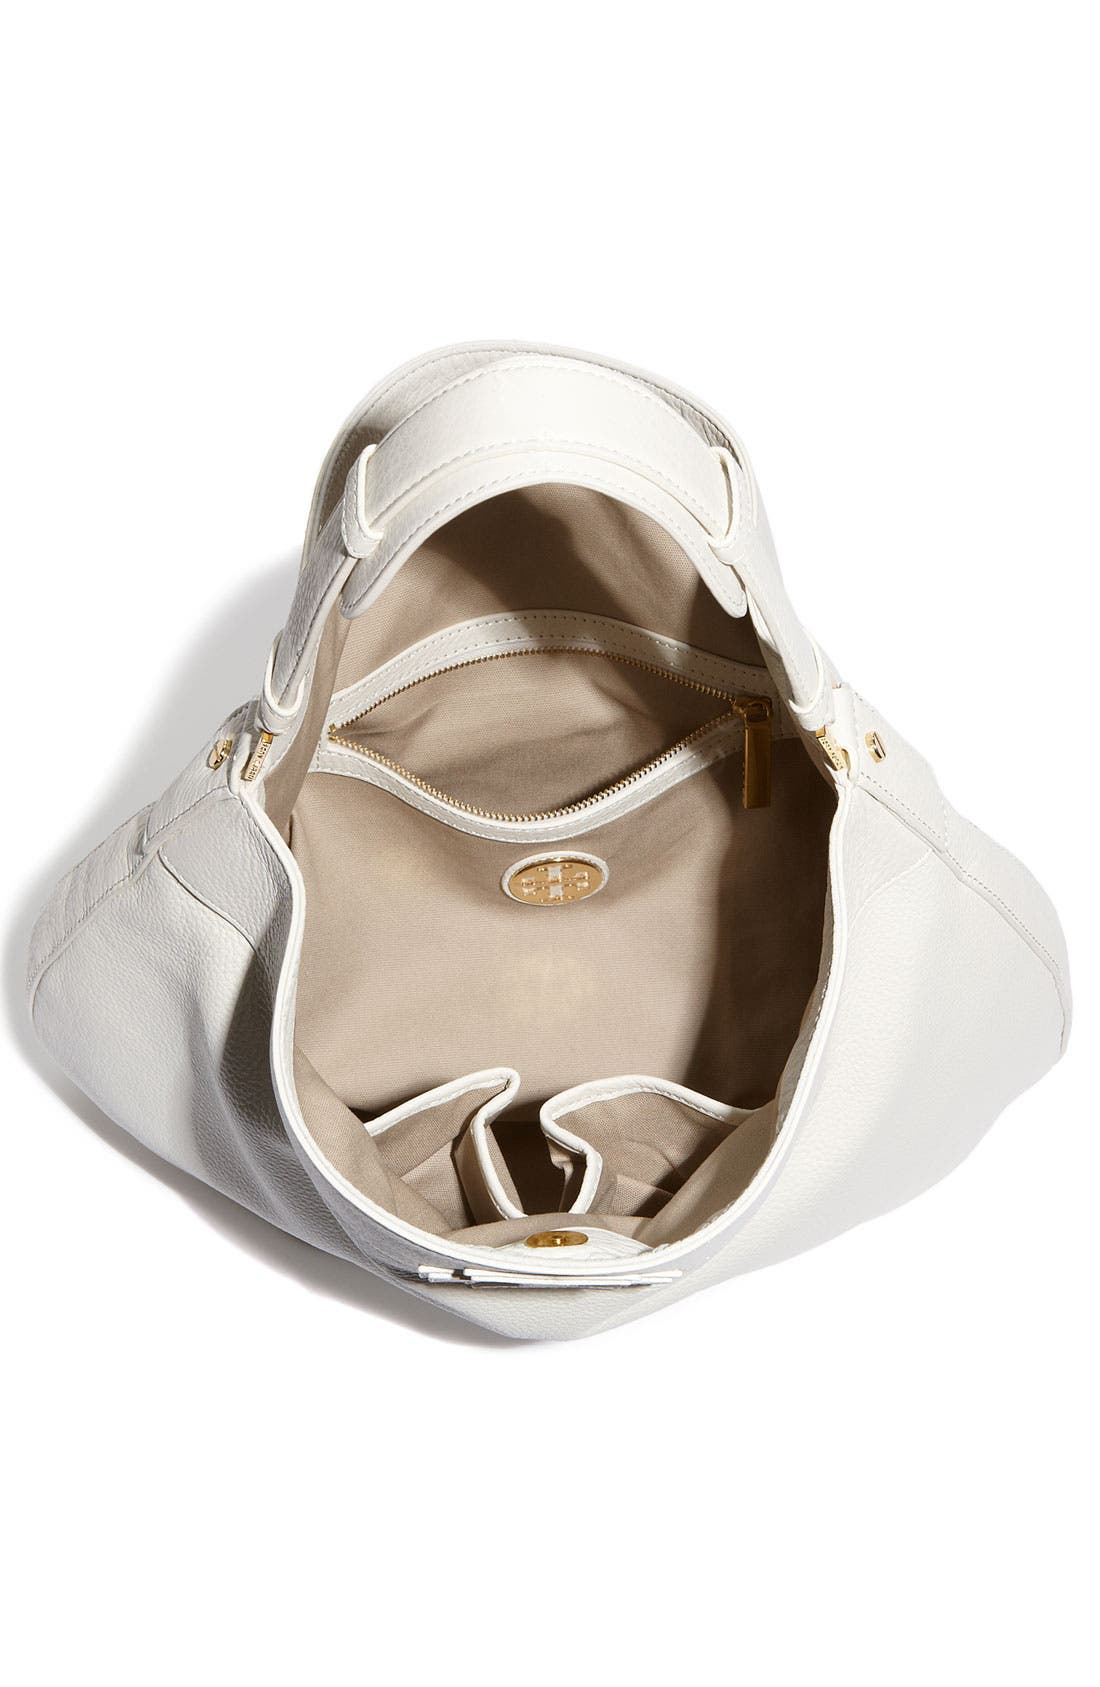 Alternate Image 3  - Tory Burch 'Stacked T Logo' Leather Hobo